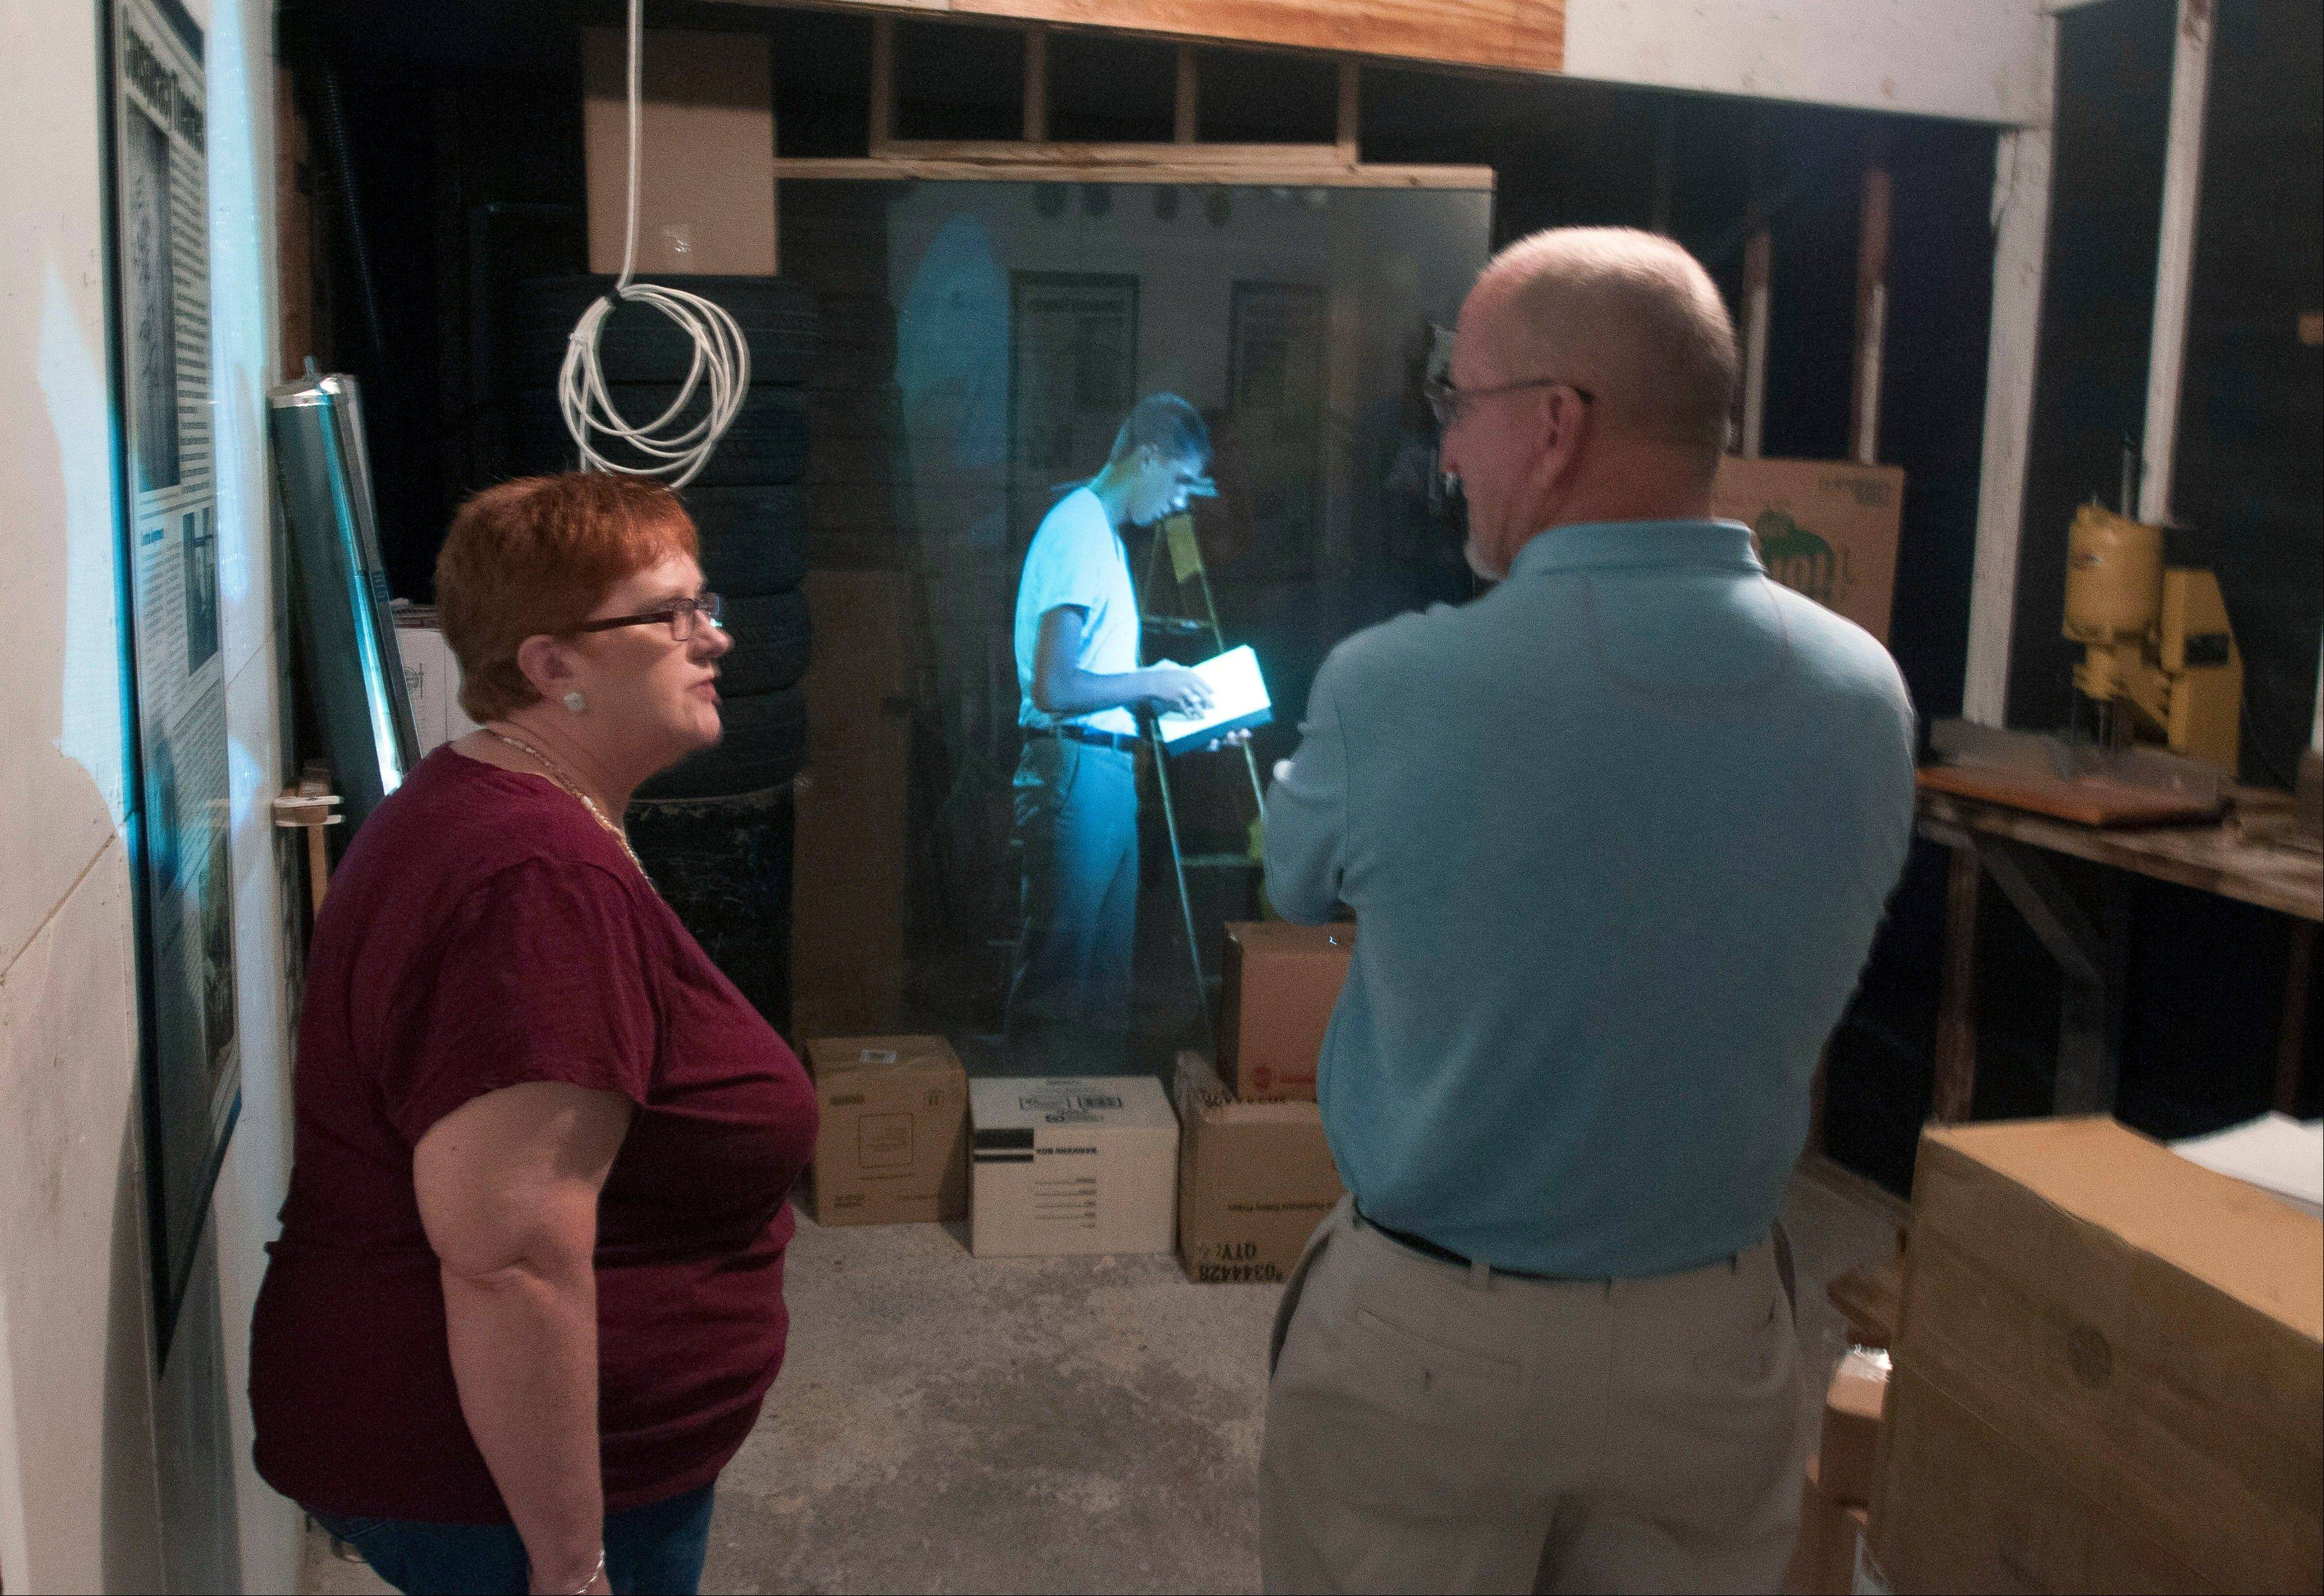 Shirley Smith, capital improvement program coordinator for the city of Irving, Texas, and building inspector Lawrence Crow talk in the garage at the Ruth Paine House Museum in Irving. The museum in the small, two-bedroom home that once belonged to Ruth Paine, who had befriended Lee Harvey Oswald's wife, Marina, and let her live there with her two daughters, opened Wednesday. In the background is a projection of an actor portraying Lee Harvey Oswald using a technique called Pepper's Ghost.